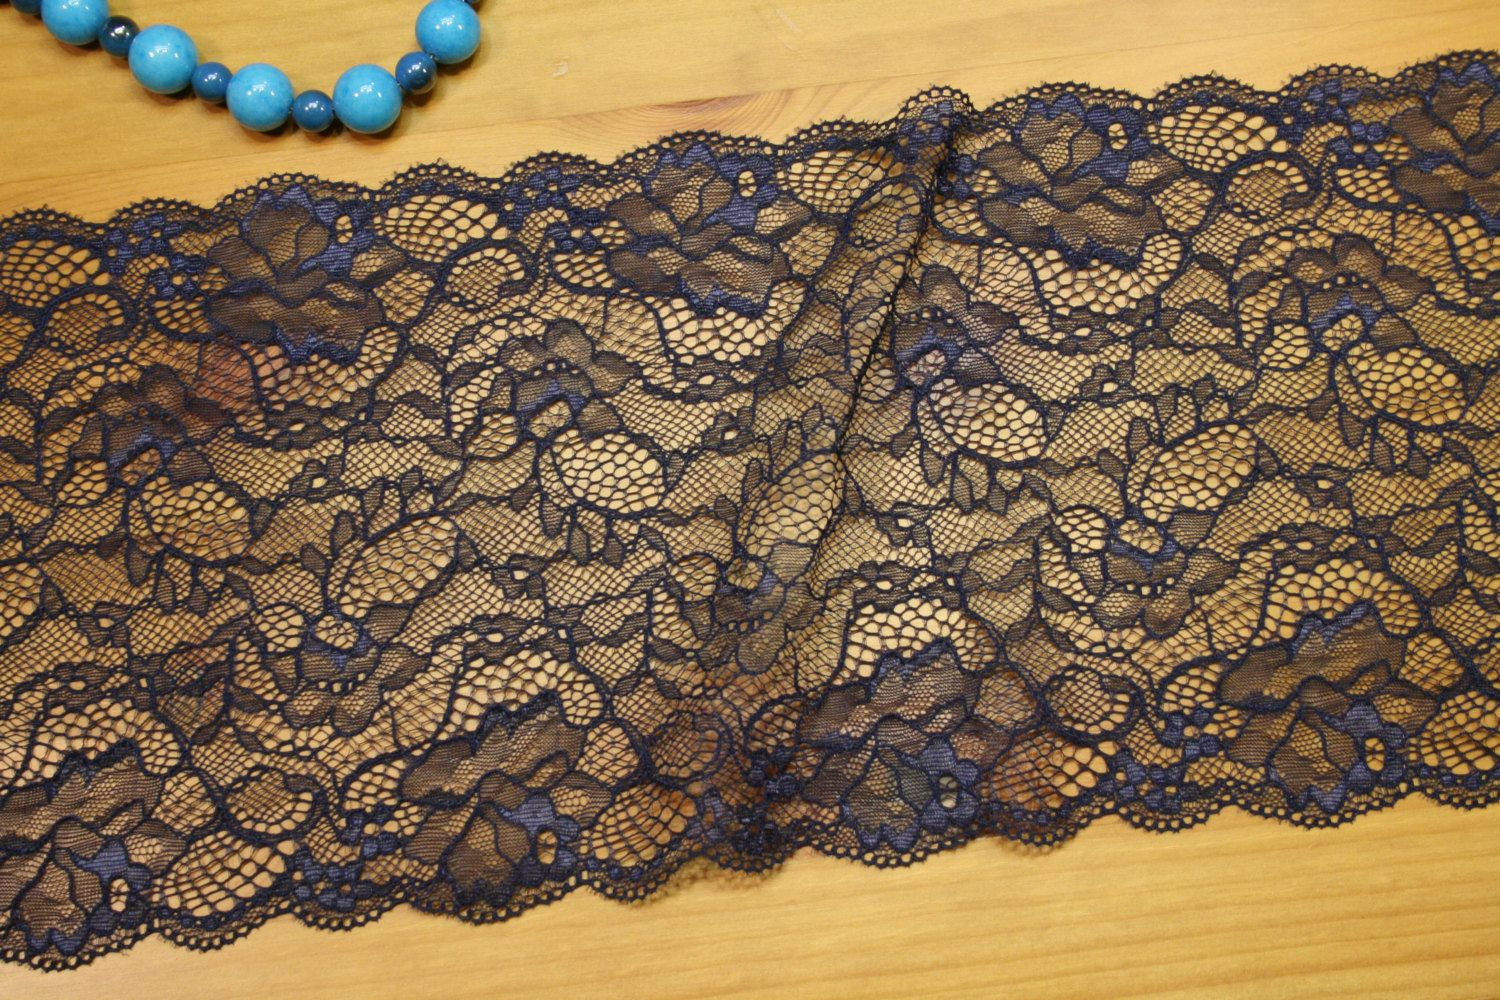 Navy Blue Lace Trim 7 17 8 Cm Unstretchable Wide Lace Ribbon With Floral Design Sewing Woven Fabric Lace By Lacedreamforyou On Blue Lace Lace Lace Ribbon